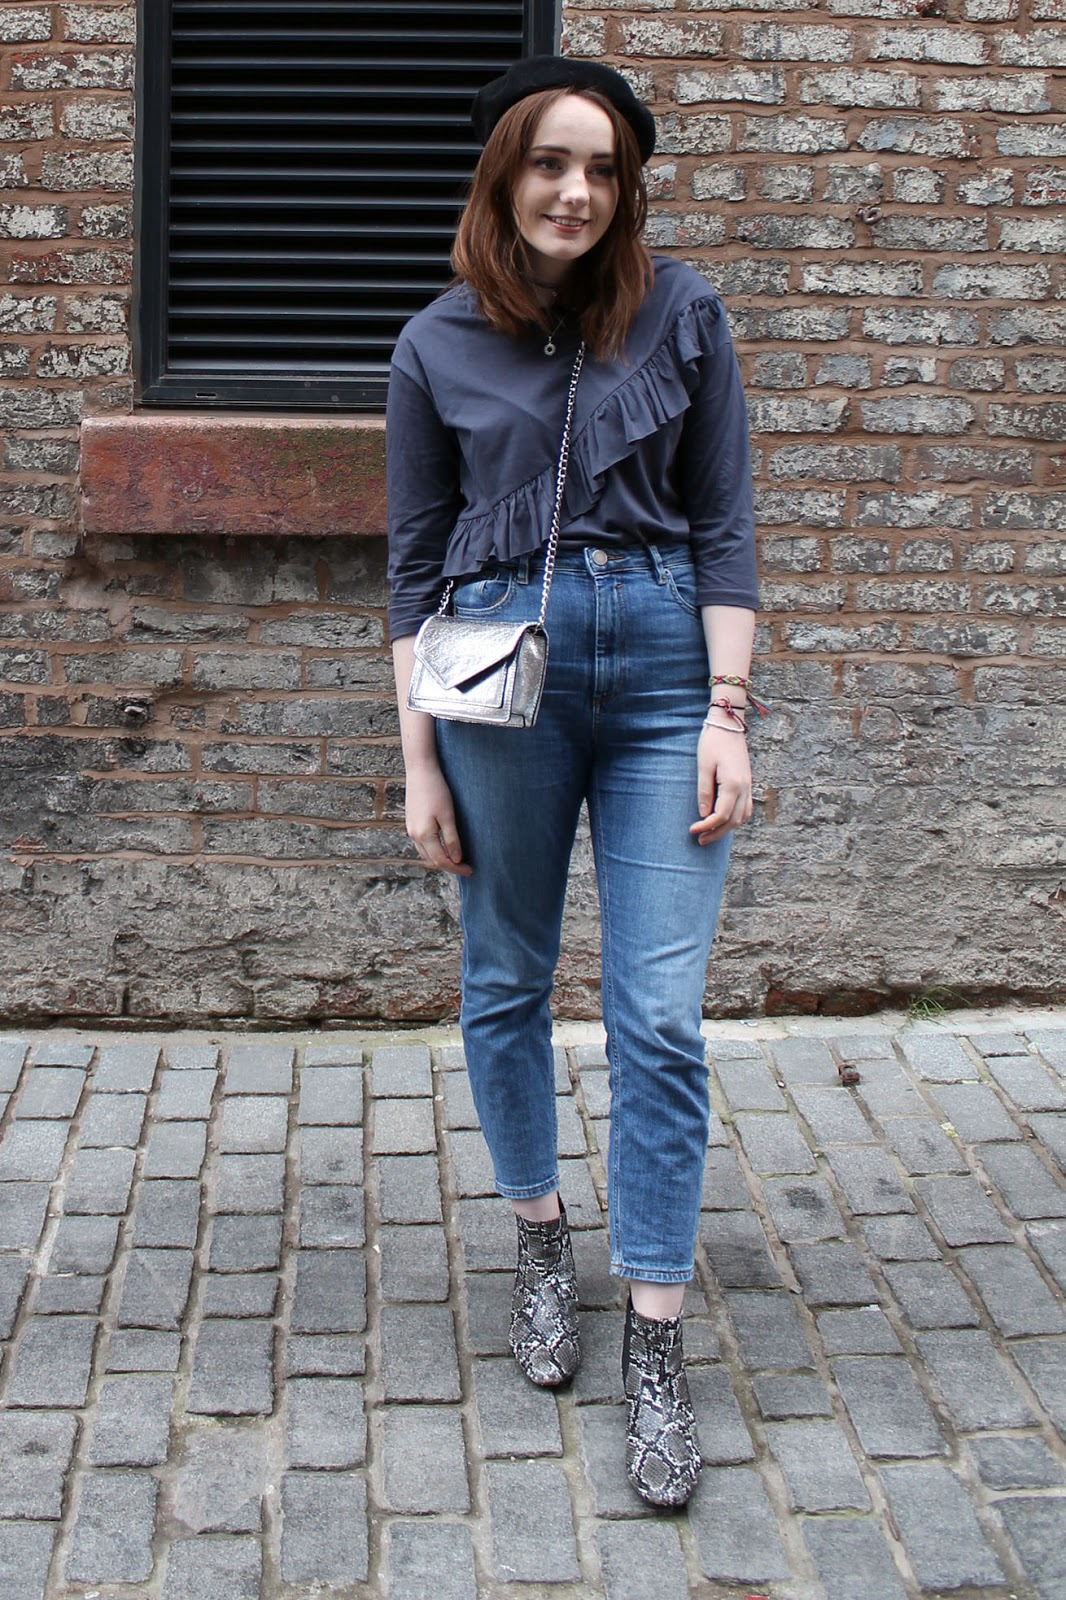 Liverpool fashion blogger, grey ruffle top, silver box bag, asos farleigh jeans and snake print boots